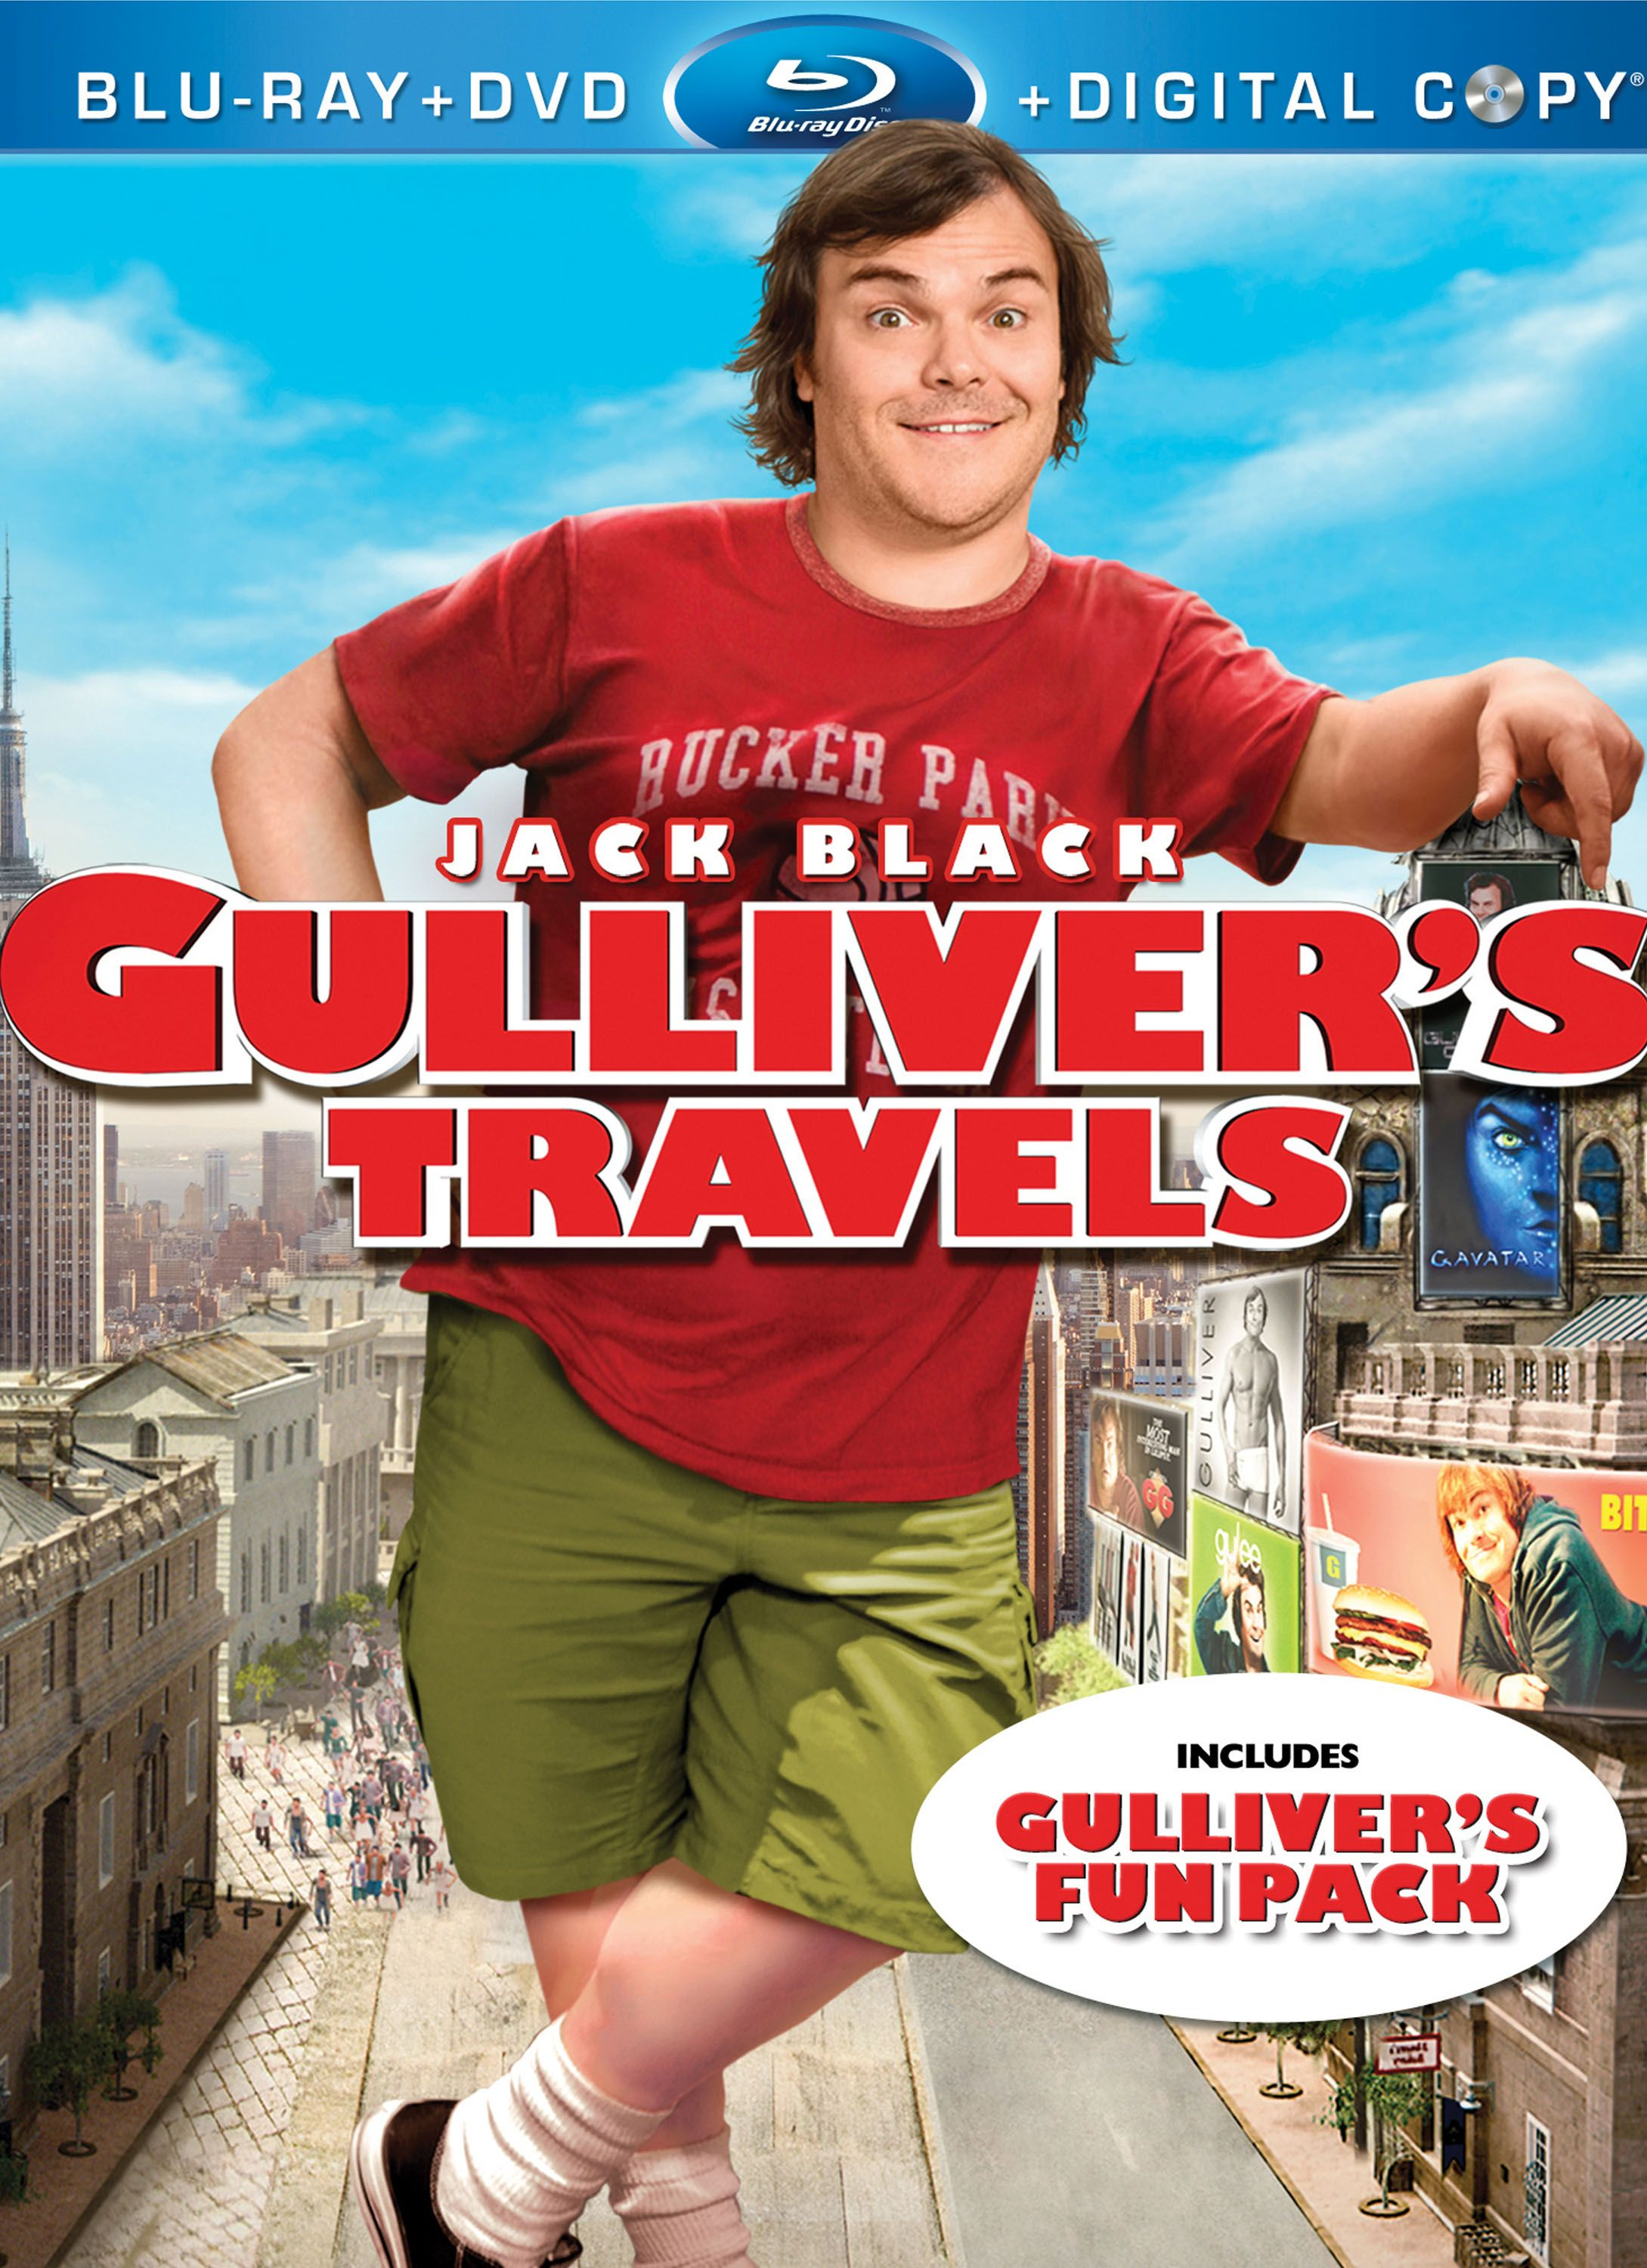 Book: Gullivers Travels